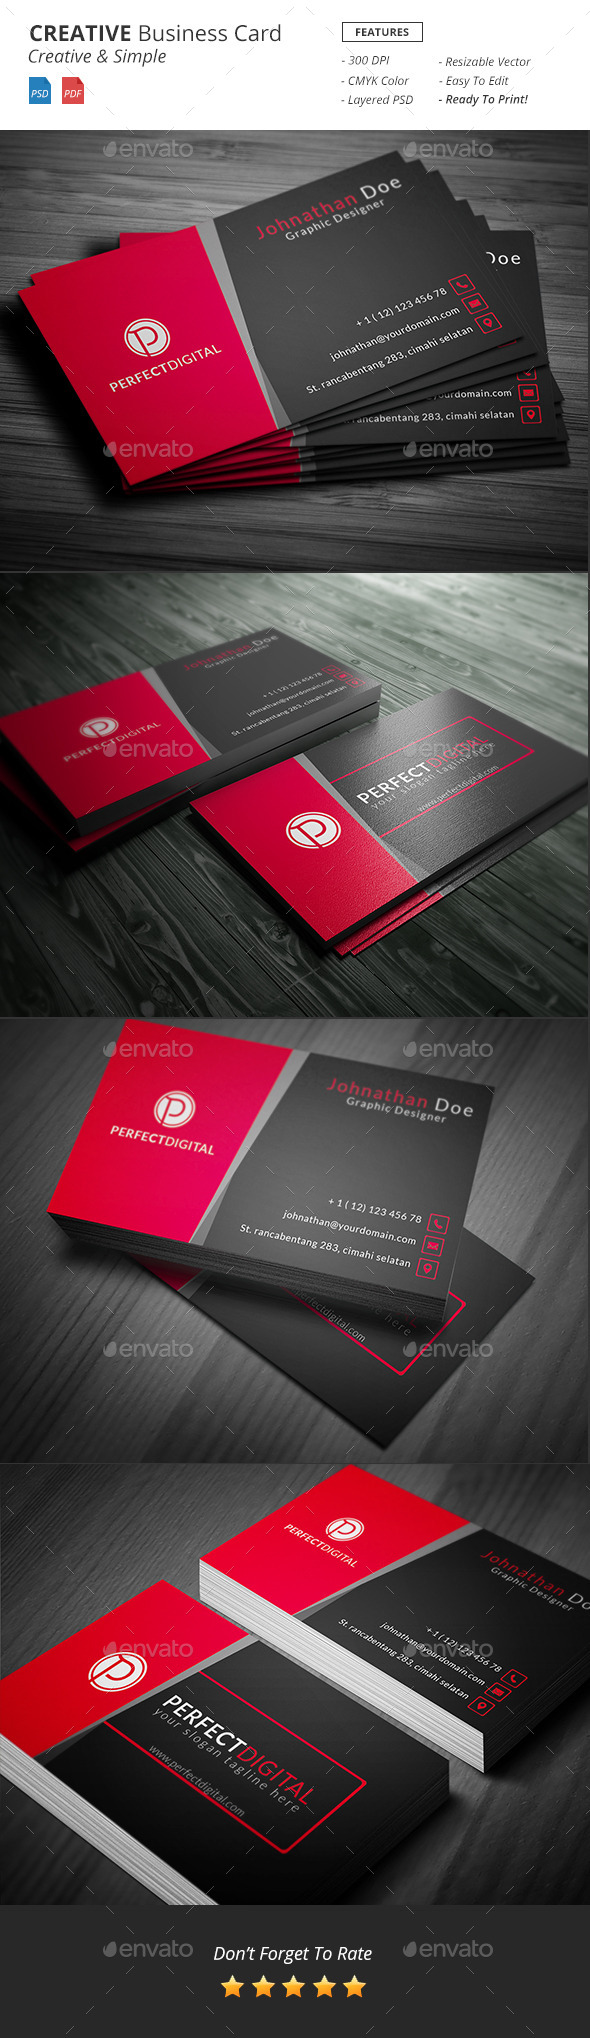 GraphicRiver Creative Business Card Template 10906436